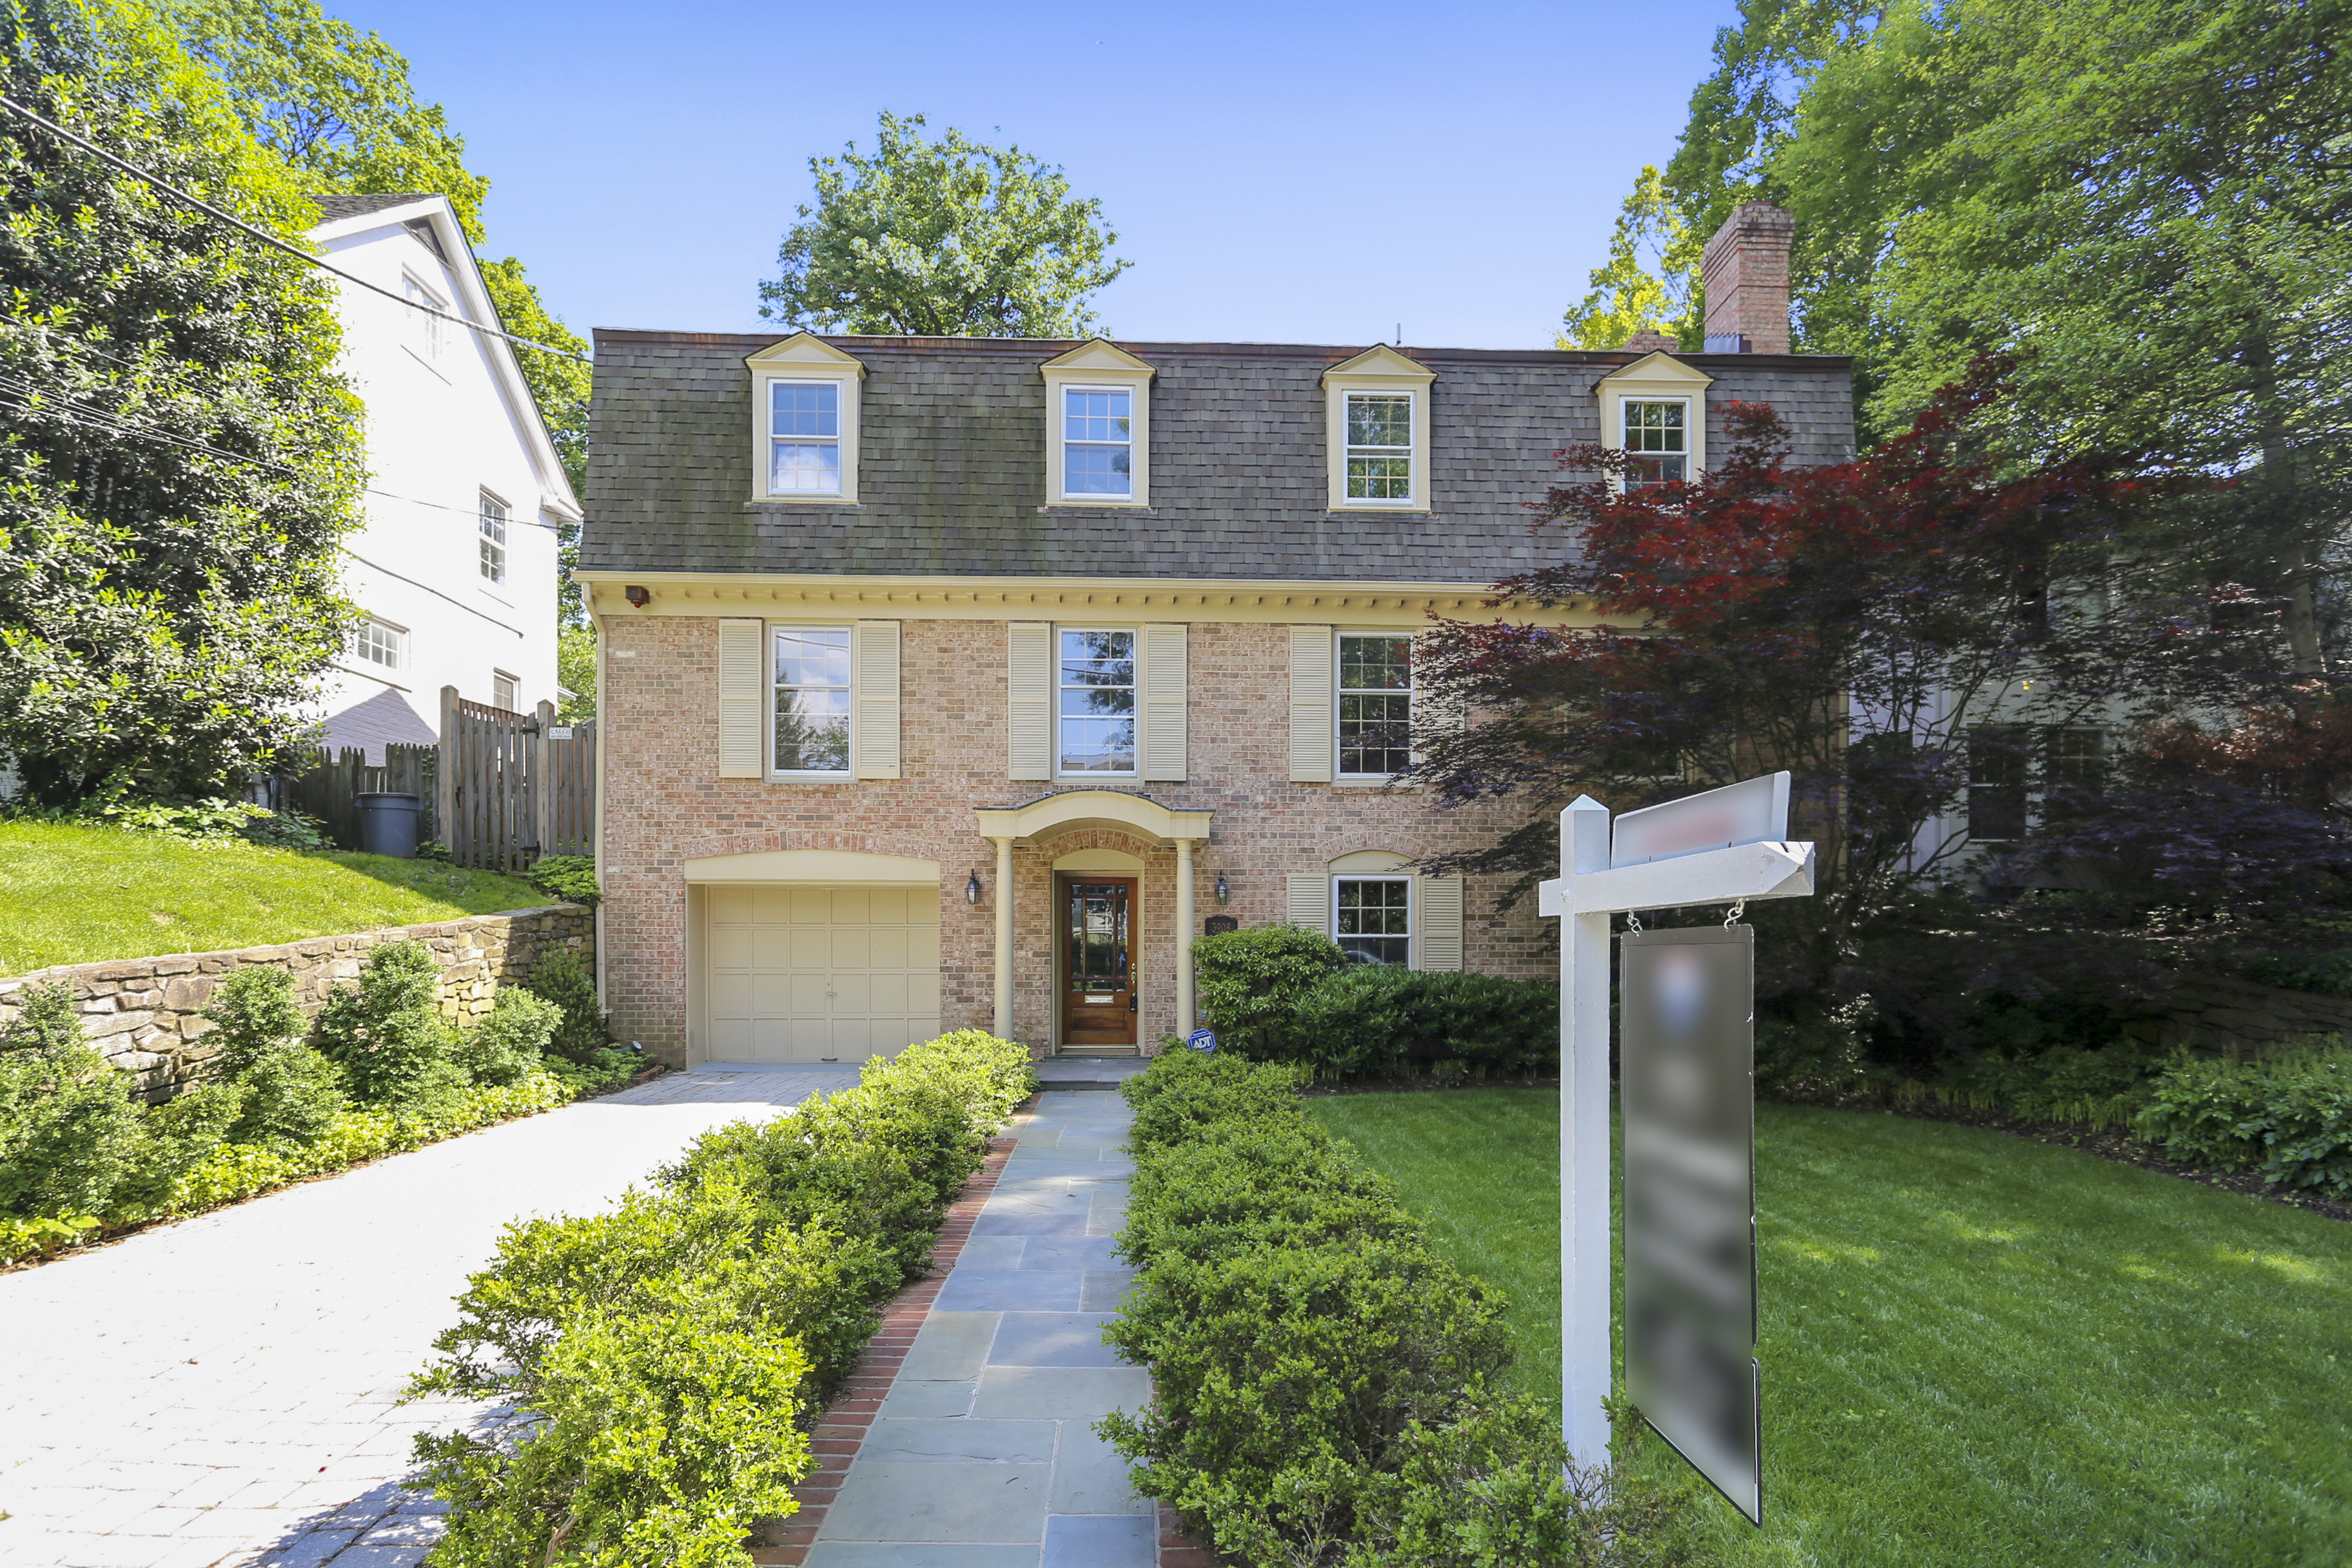 JUST LISTED IN CHEVY CHASE: 3908 Underwood St